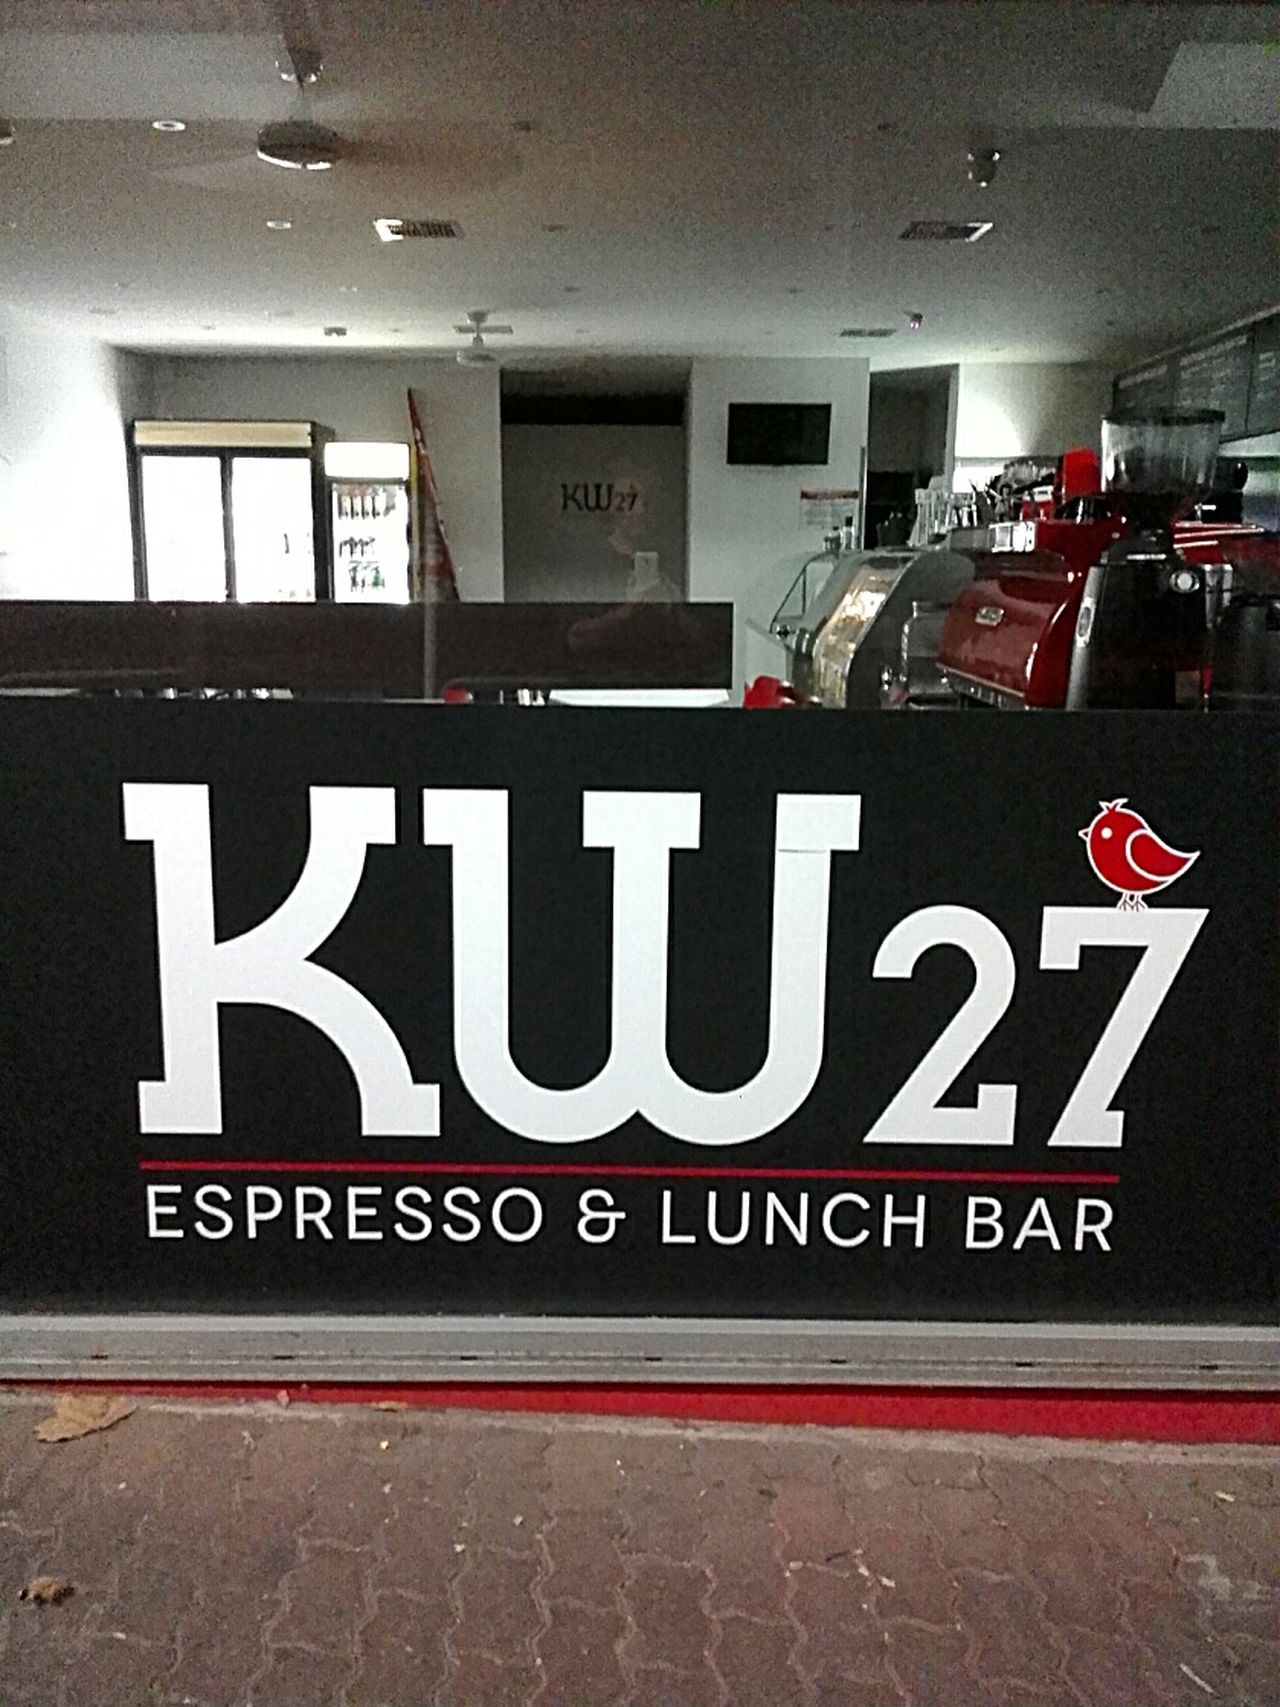 KW27 AlphaNumeric Alphabetical & Numerical Alphabets And Numbers SignsSignsAndMoreSigns Signs_collection Signs & More Signs Signage Signs, Signs, & More Signs Sign Signs Signs Everywhere Signs SIGN. Signs Signstalkers Espresso Bar Espresso & Lunch Bar Cafés Kw 27 Coffee Shop Espresso Shop Windows Espressohouse King William Street Windows